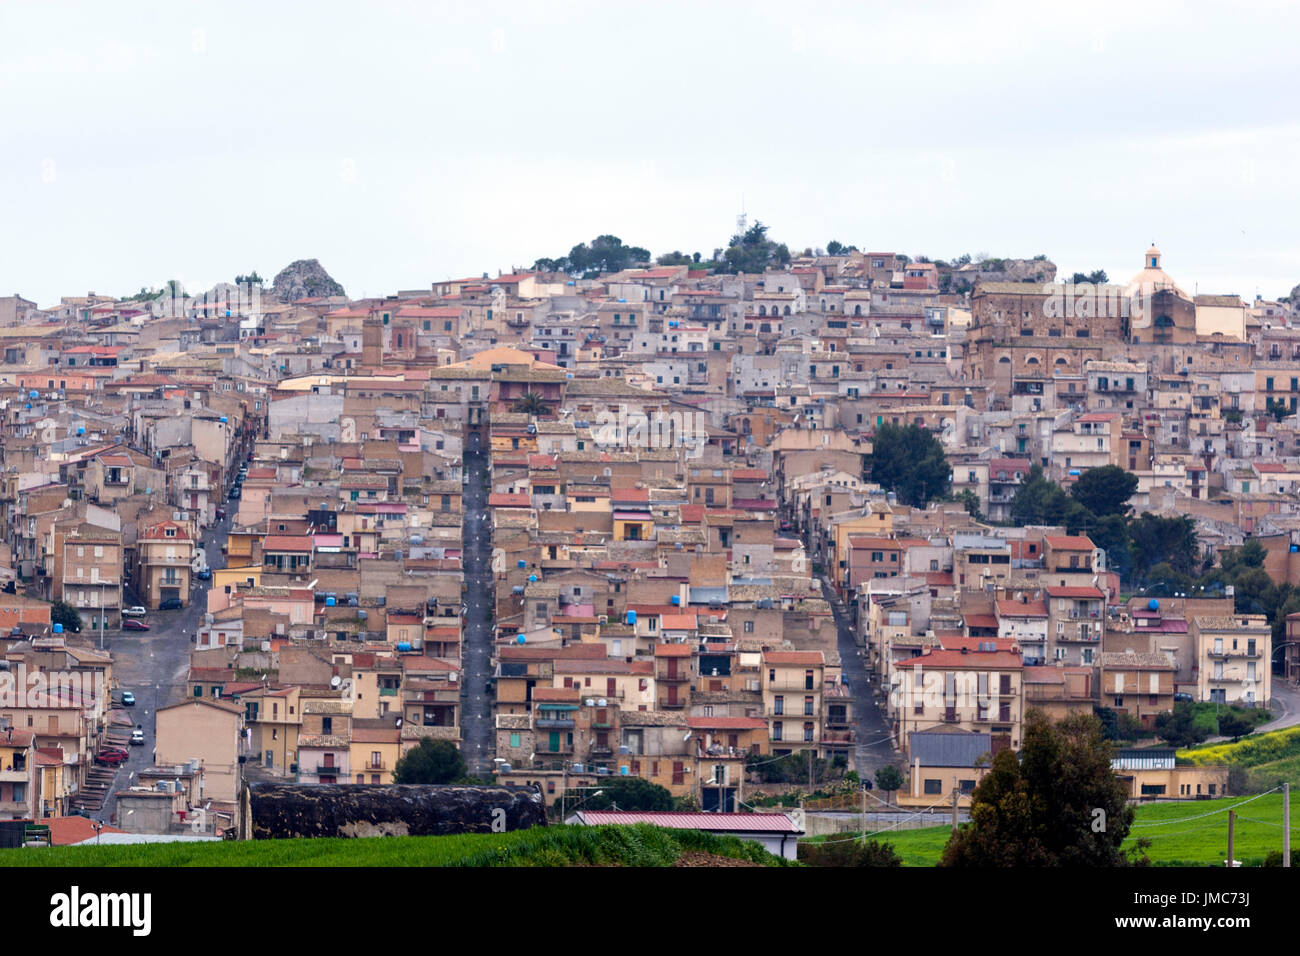 View of a Sicily town with their straight street and avenues, , Italy - Stock Image